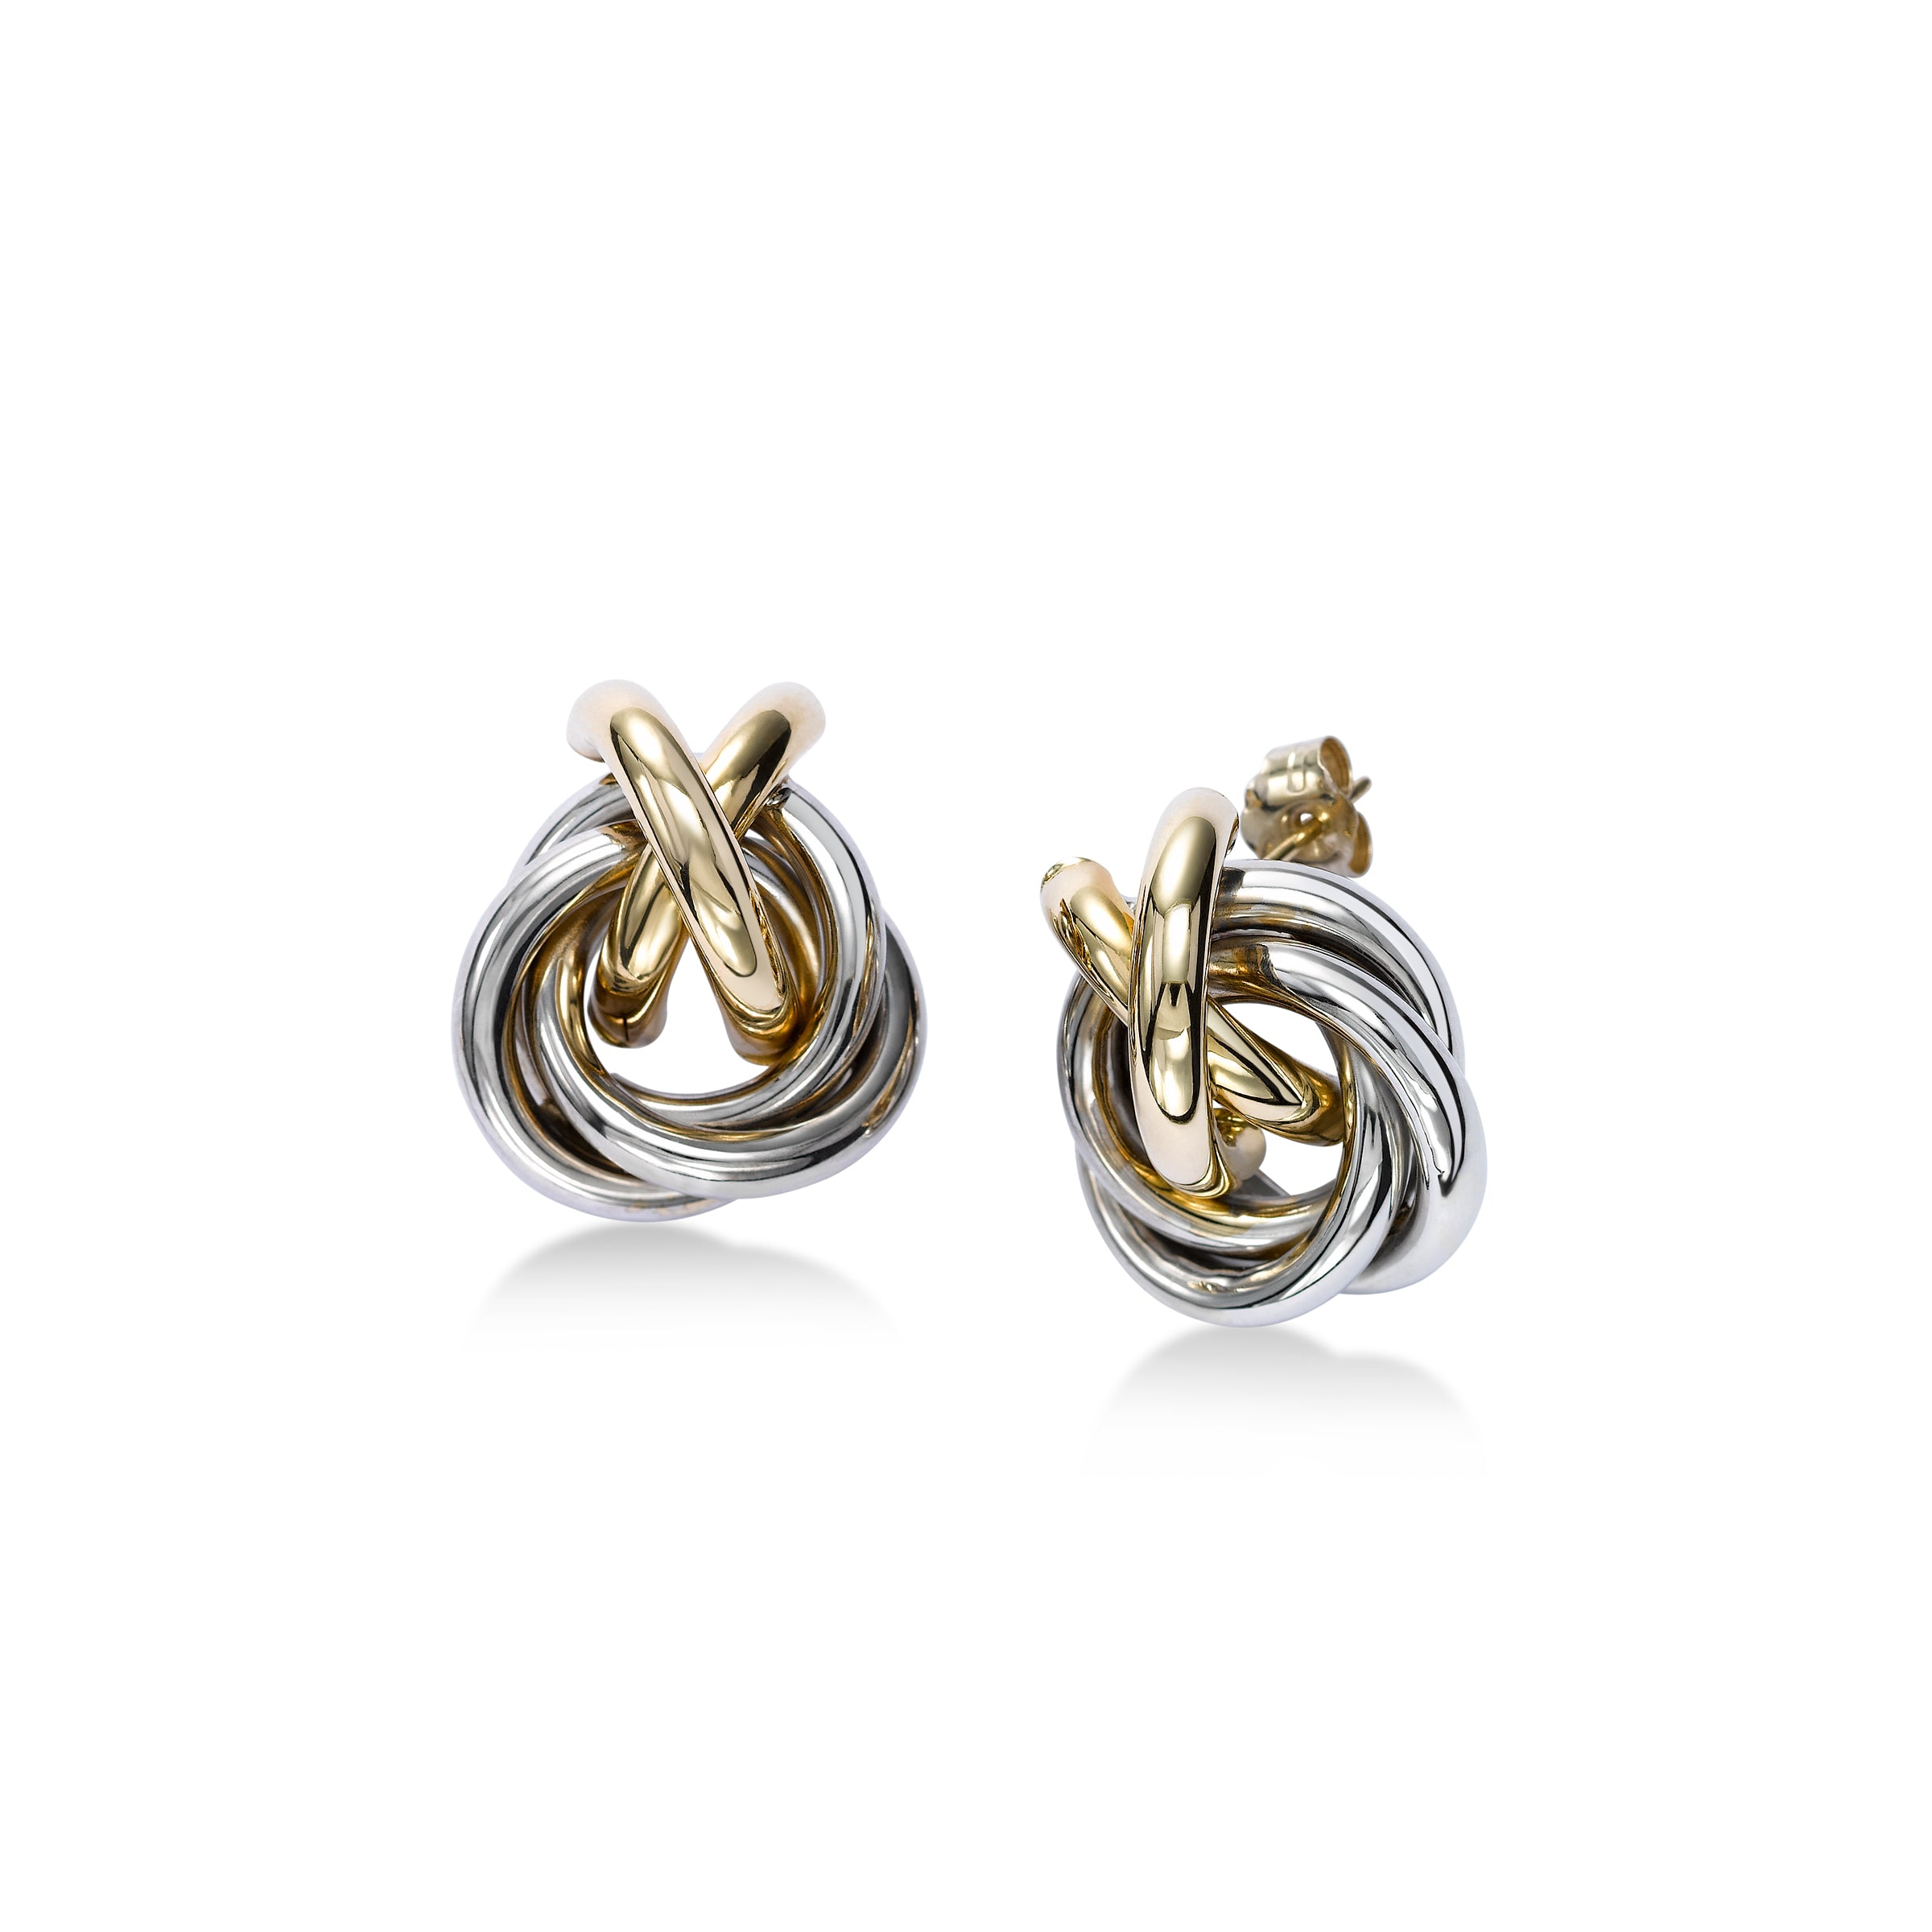 Two Tone Interlocking Circles Earrings, 14 Karat Gold